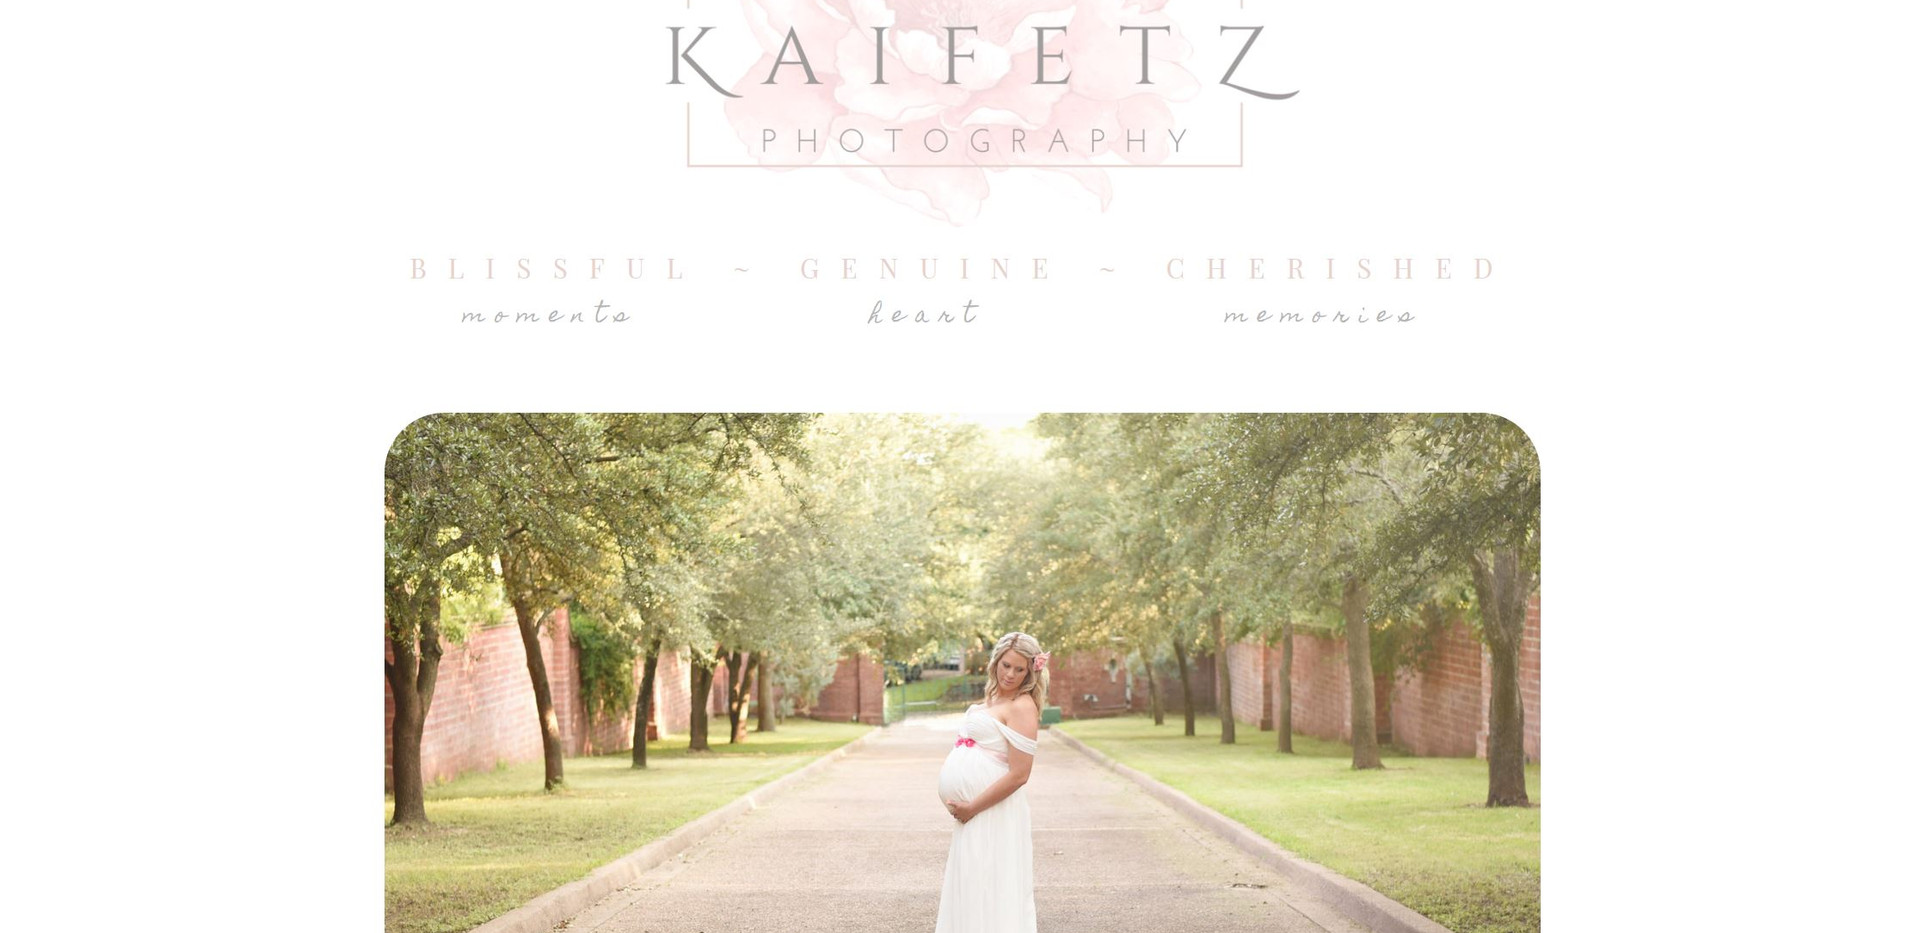 Erin Kaifetz Photography Website Home Page